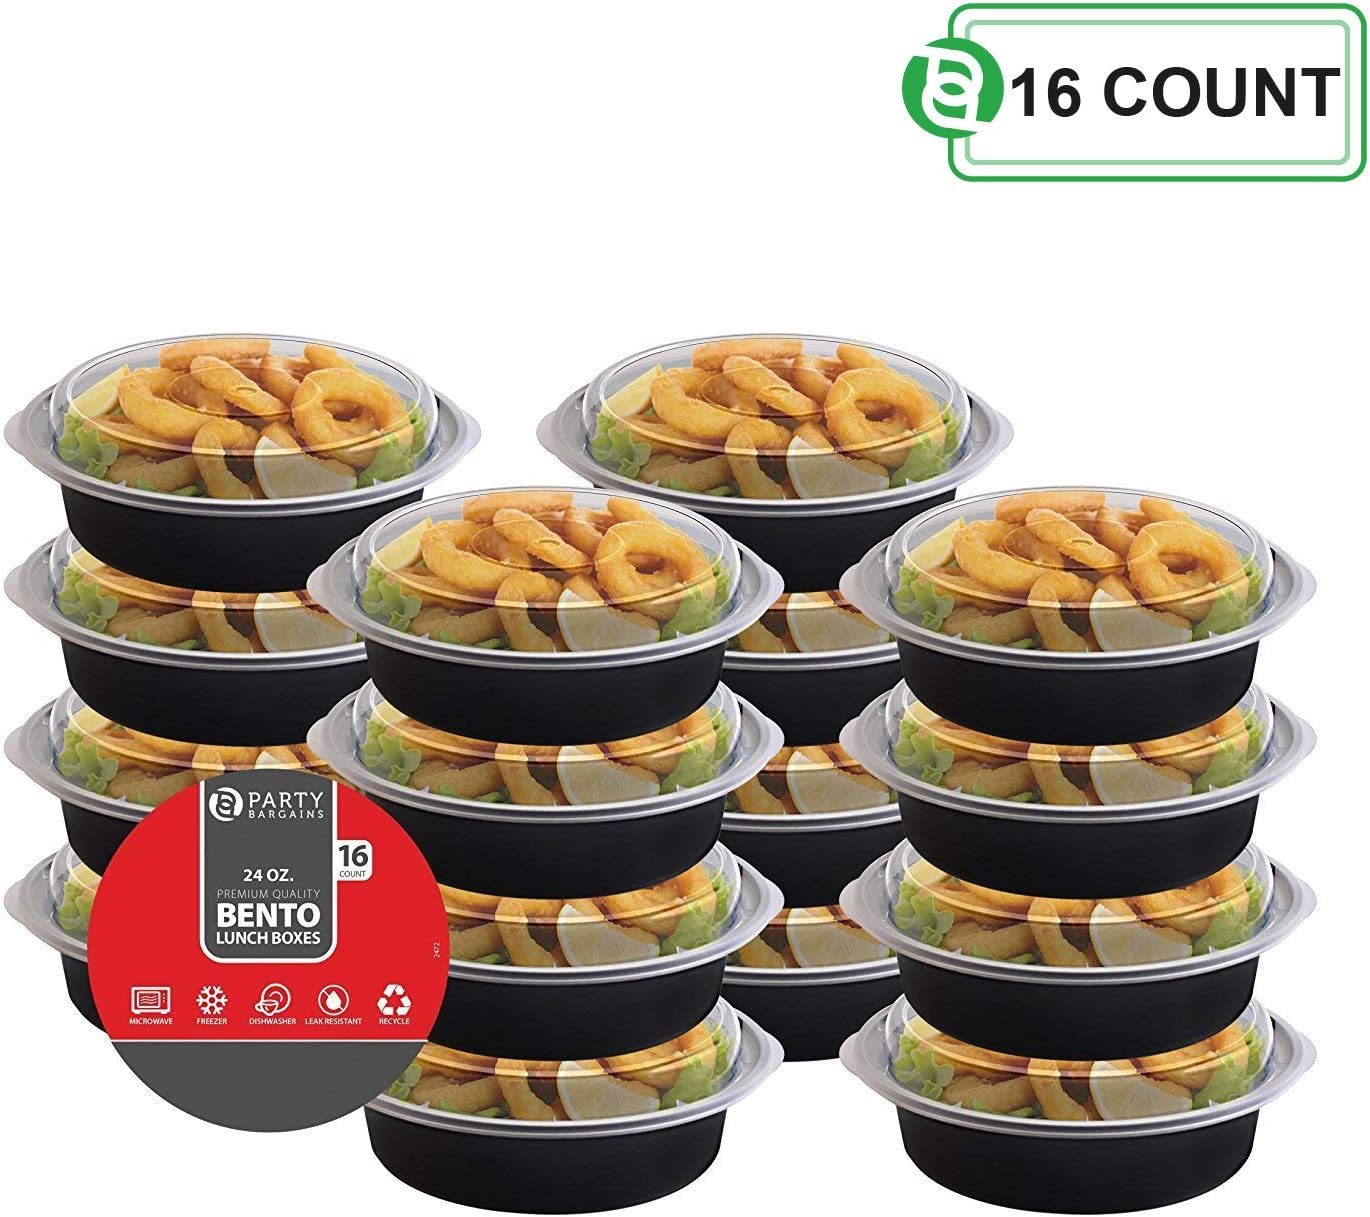 Party Bargains Round Plastic Food Container with Airtight Lids Bento Lunch Box | Meal Prep Food Containers Portion Control Leakproof Microwavable, Reusable & Freezer Safe - 24 Oz | PACK of 16